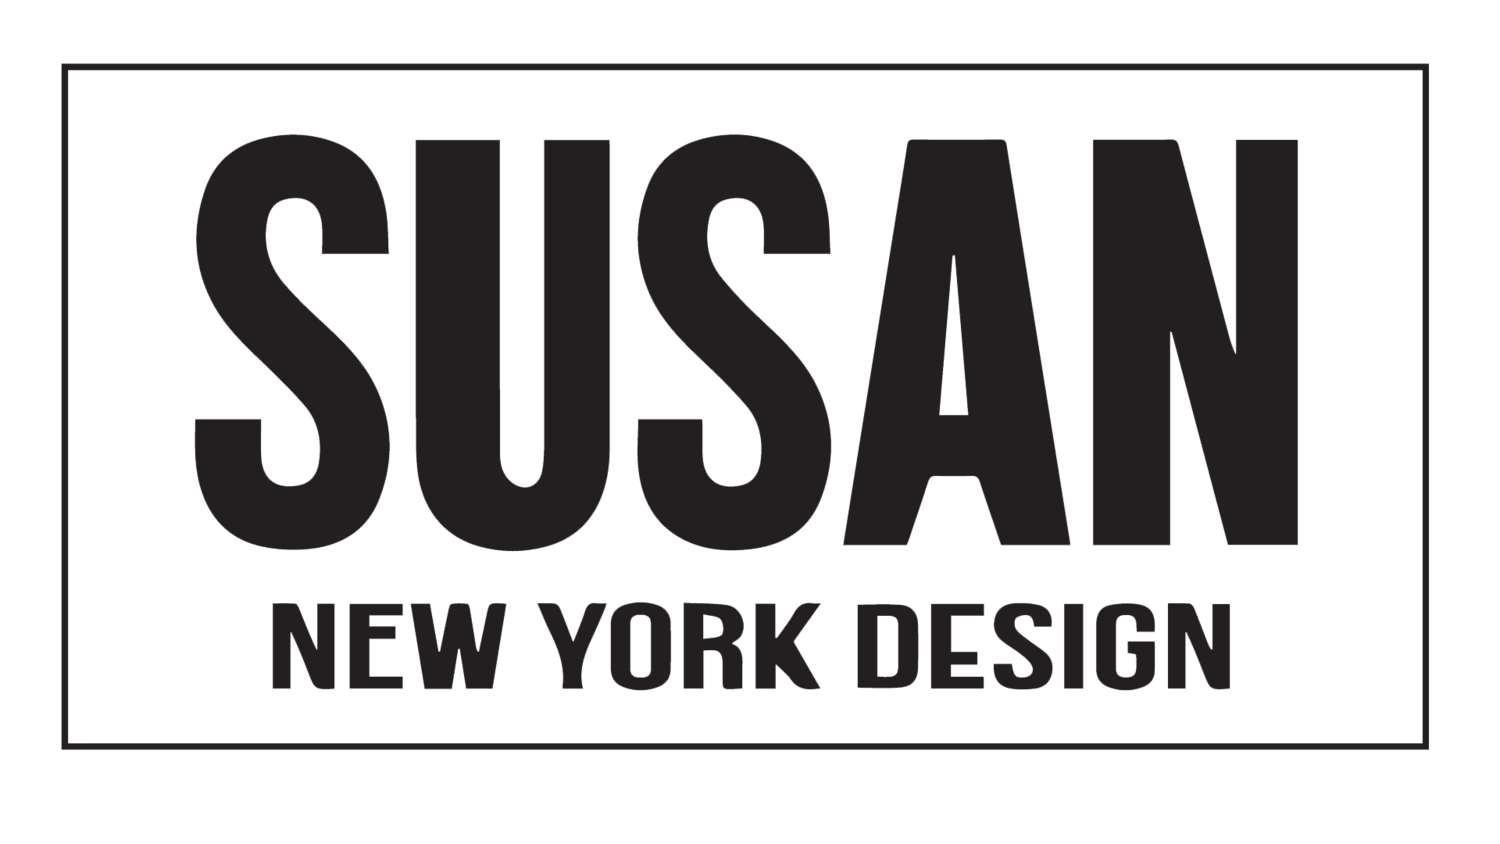 Susan New York Design